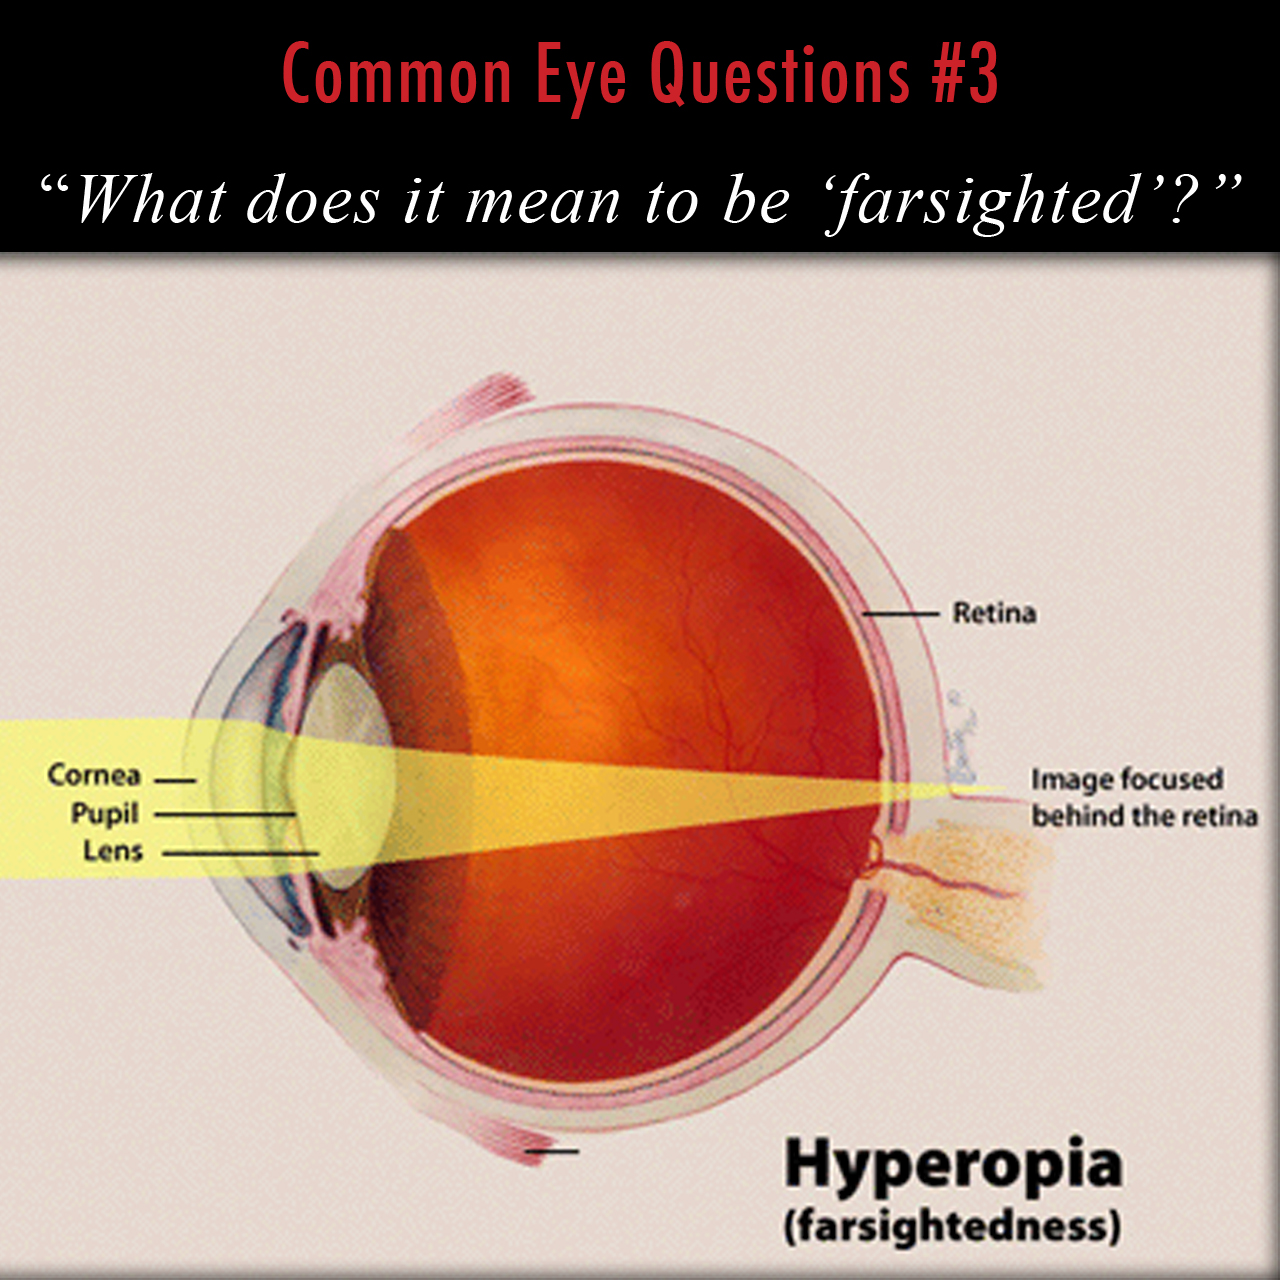 The anatomy of hyperopia, or farsightedness